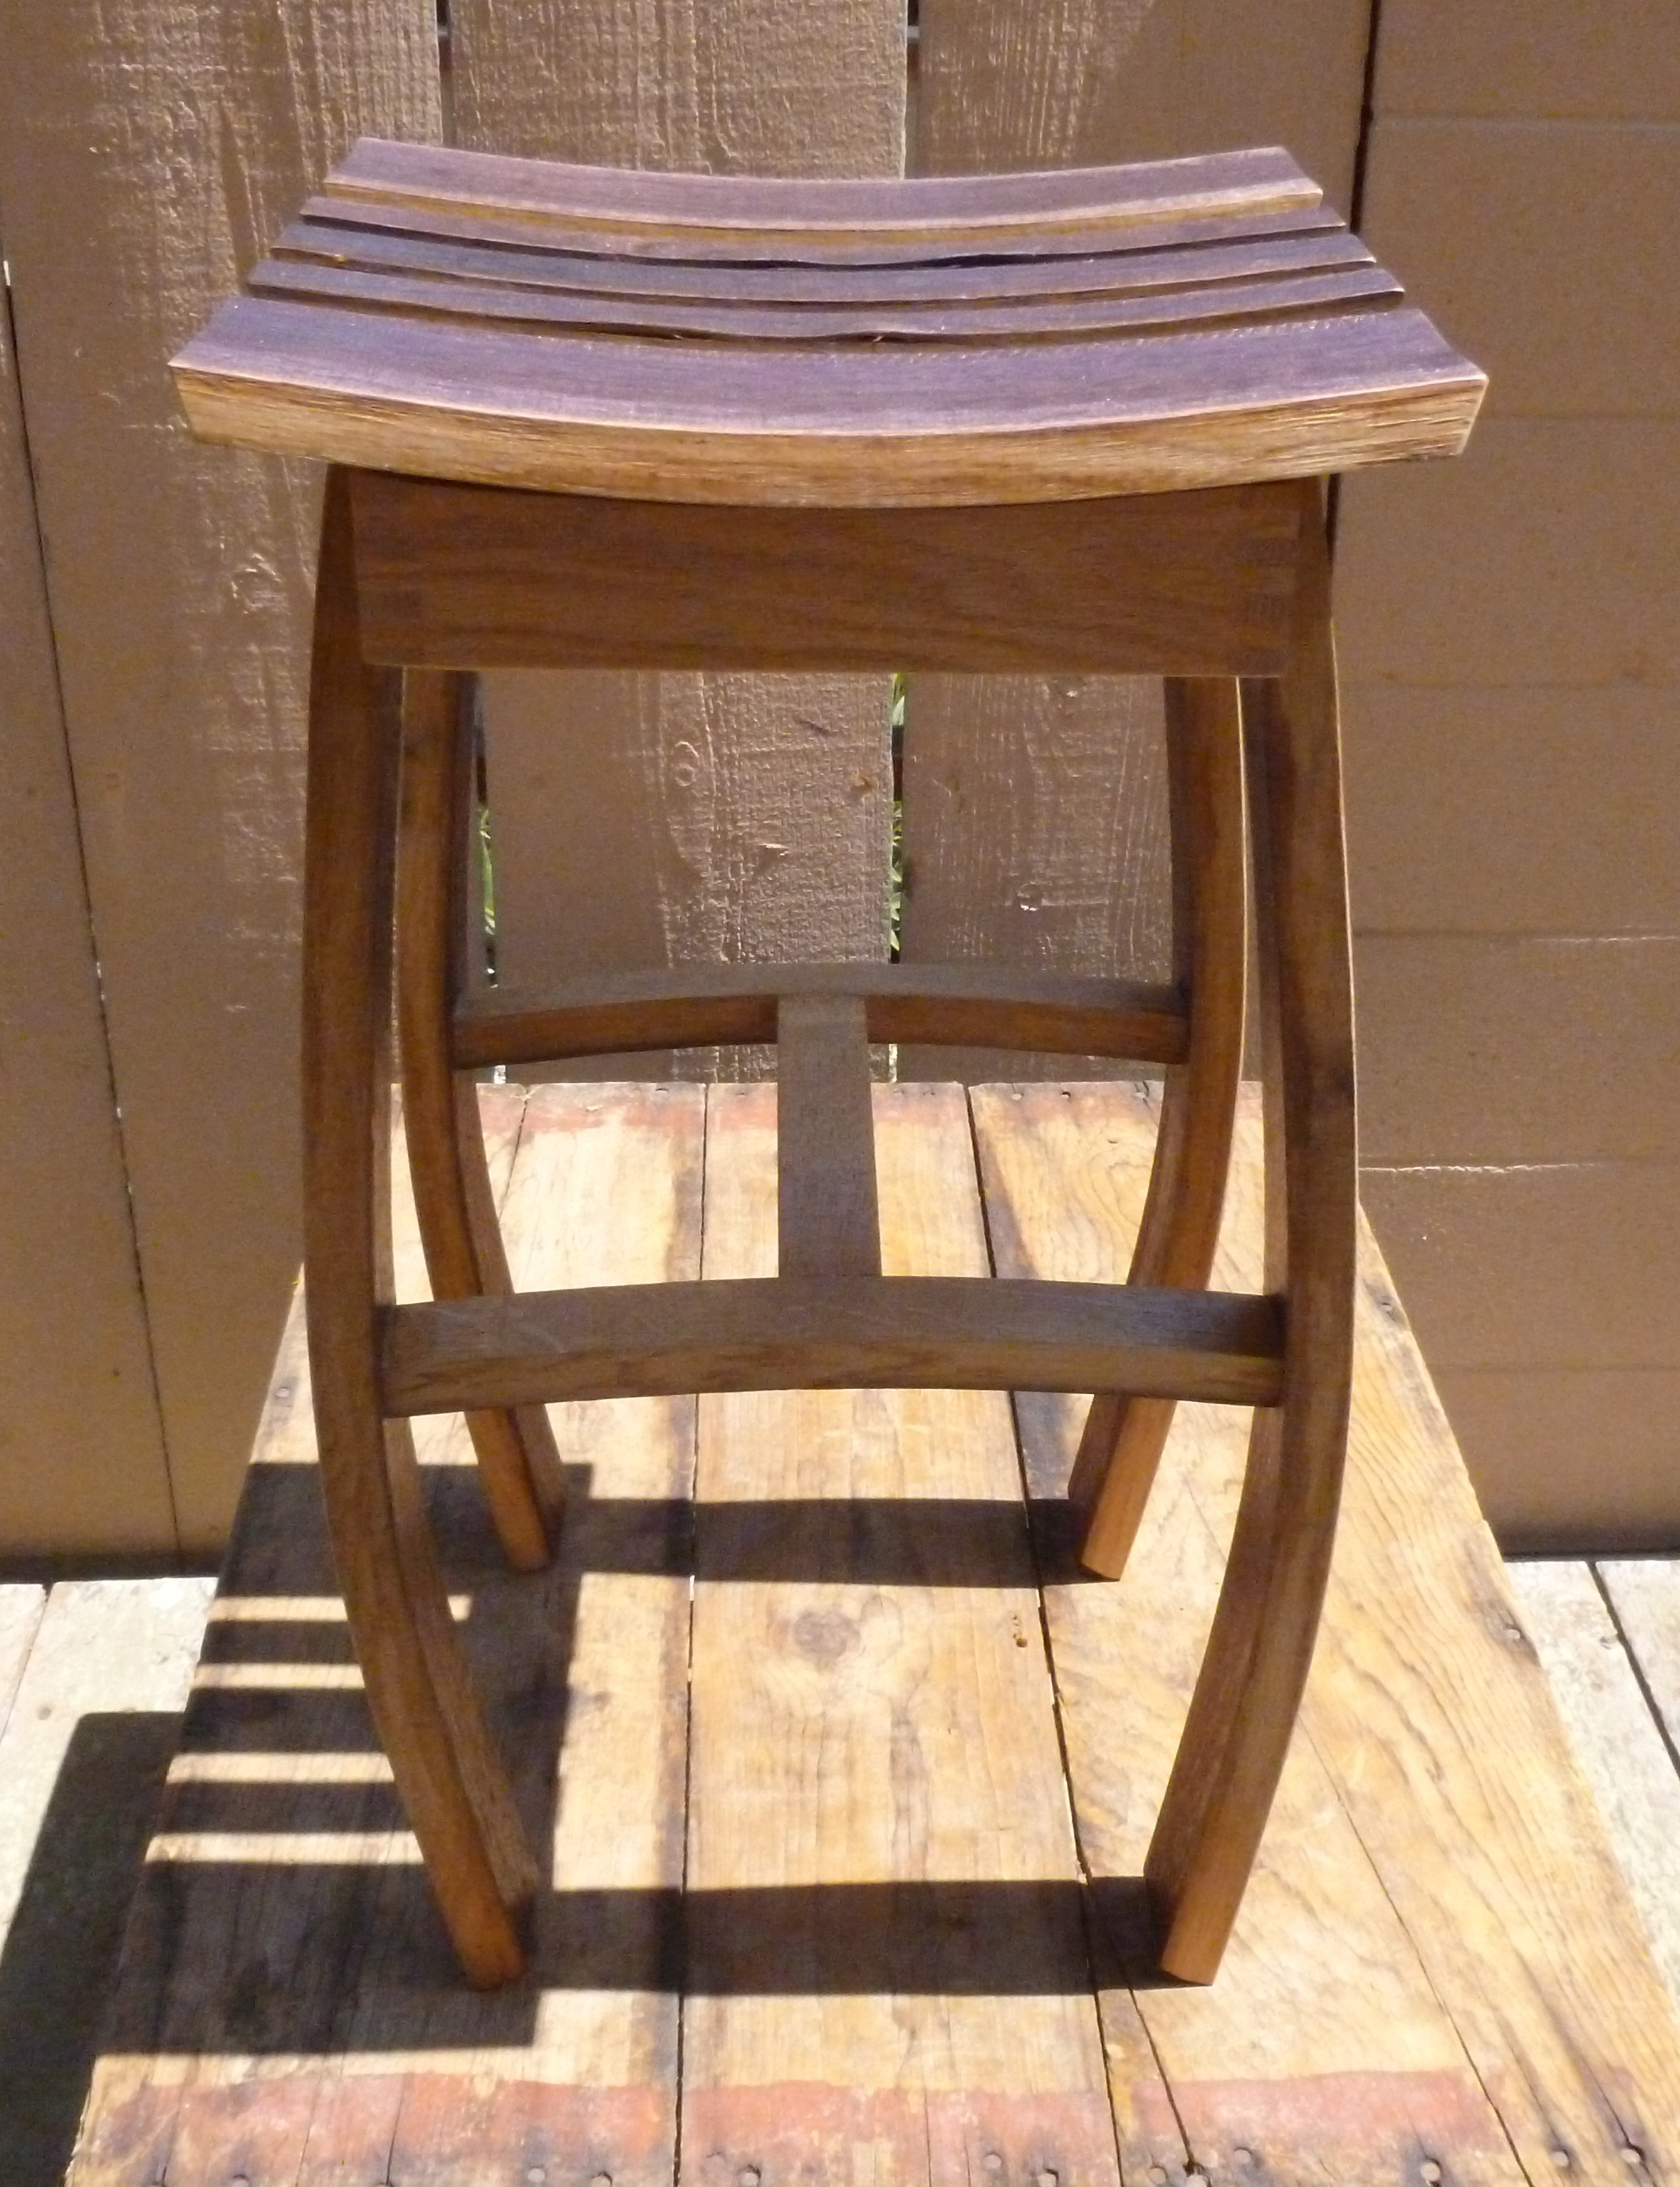 2 Oak Wine Barrel Stave Stool Shorter Johnsonarts